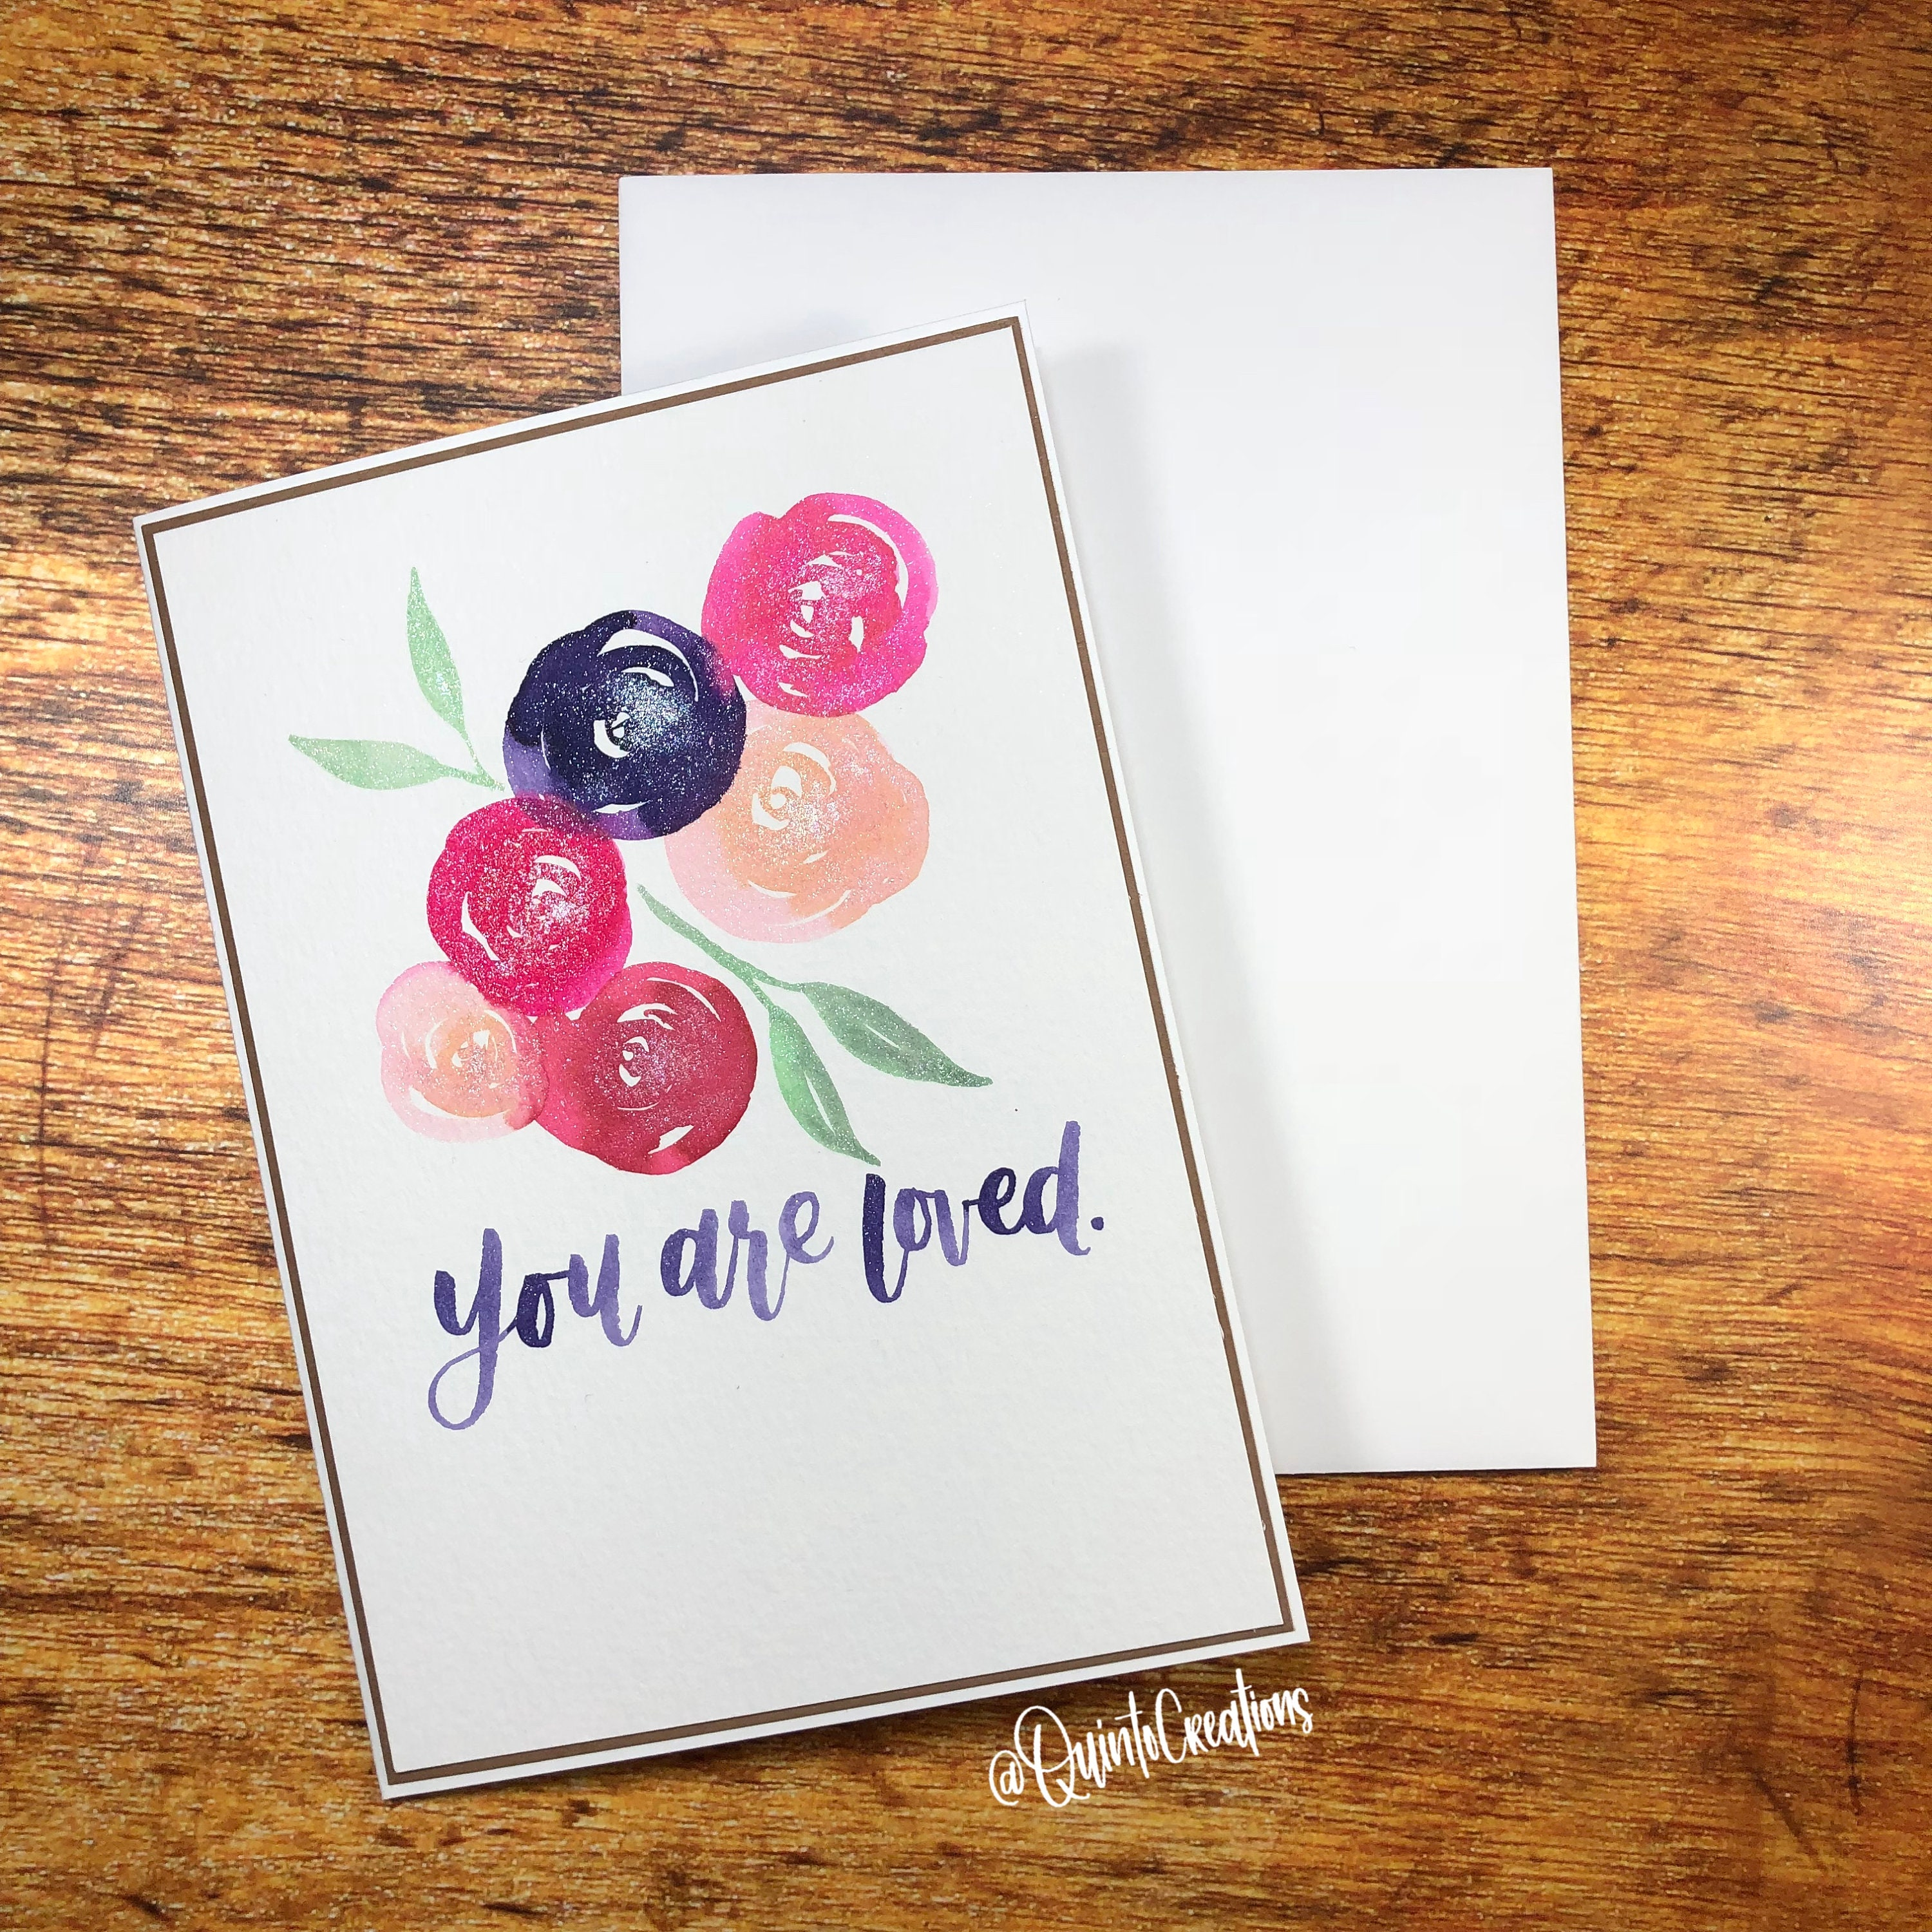 You Are Loved- Greeting Card, 5 x 7 inches, Glitter Ink, Watercolor,  Painting, Hand lettering, Floral, Flowers, Stationery, Paper goods, A7